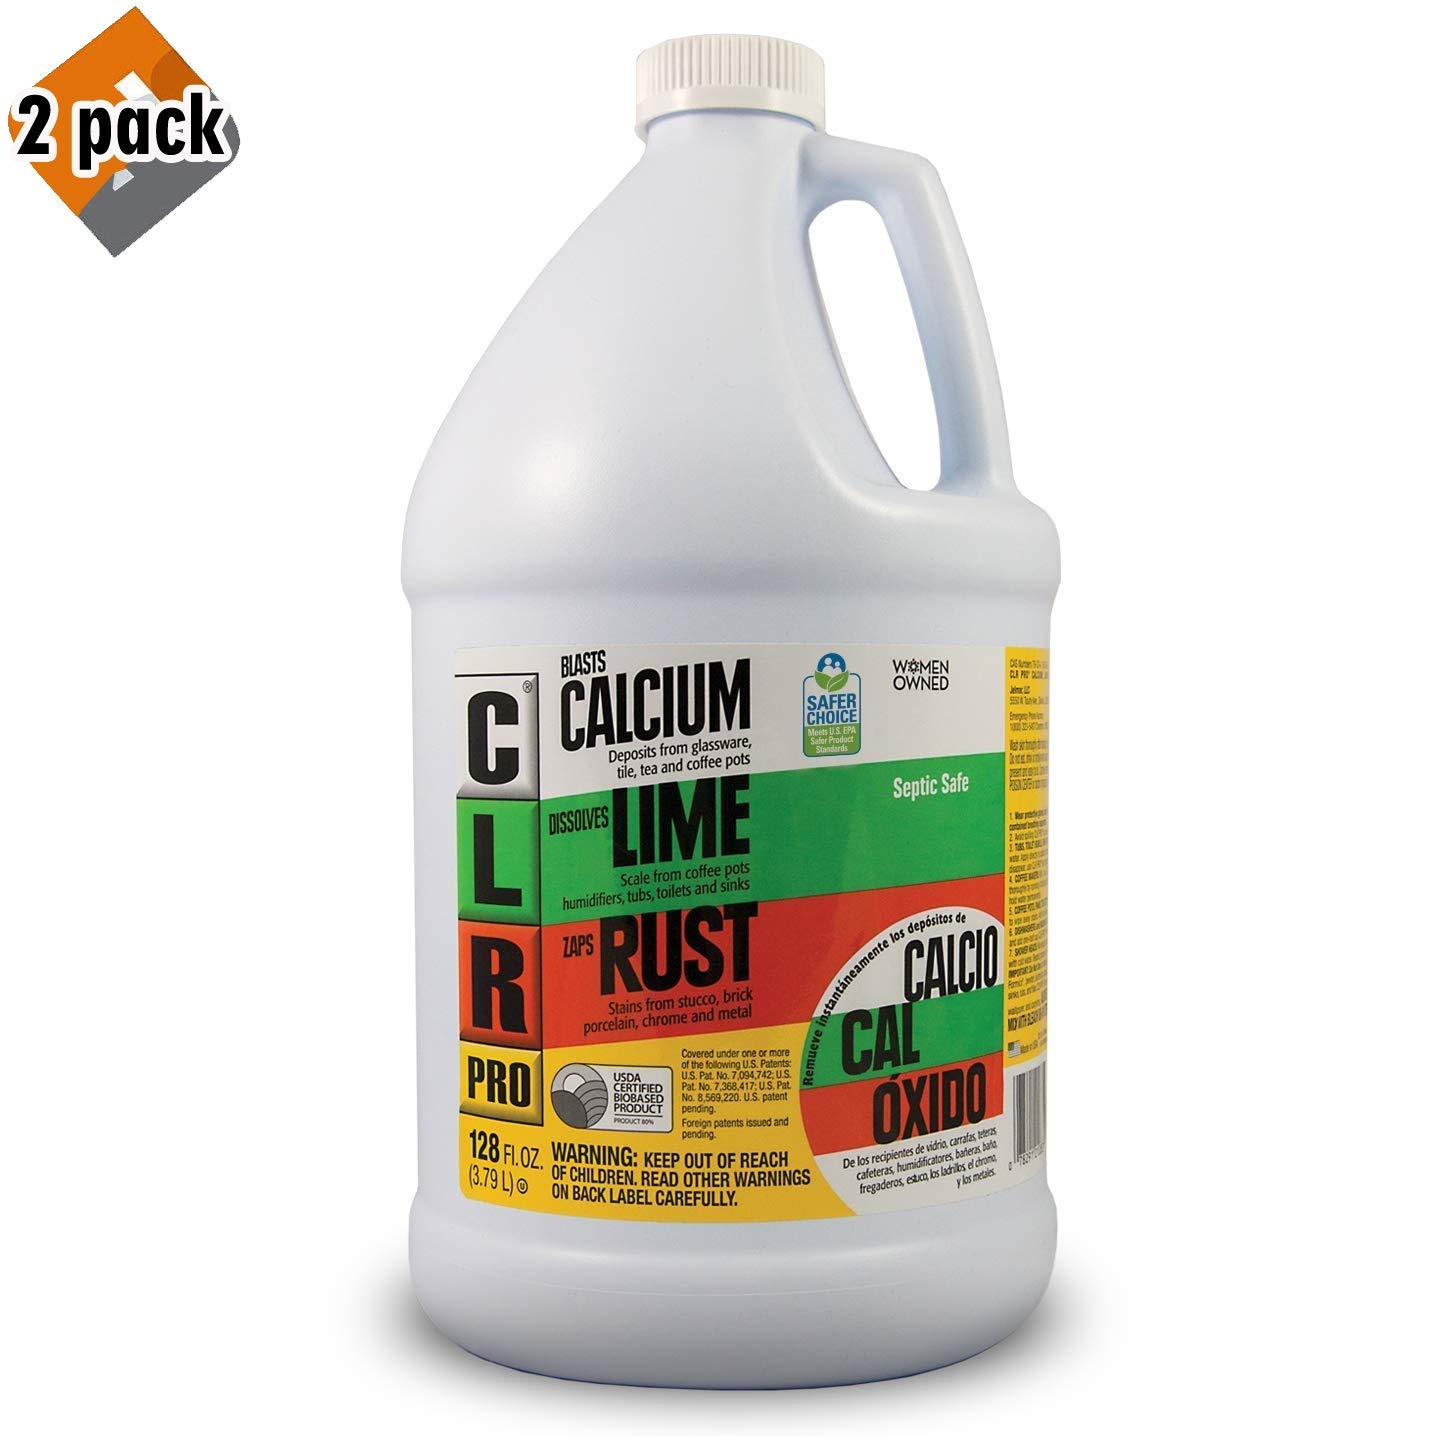 CLR PRO Calcium, Lime & Rust Remover, 1 Gallon Bottle - Pack 2 by CLR